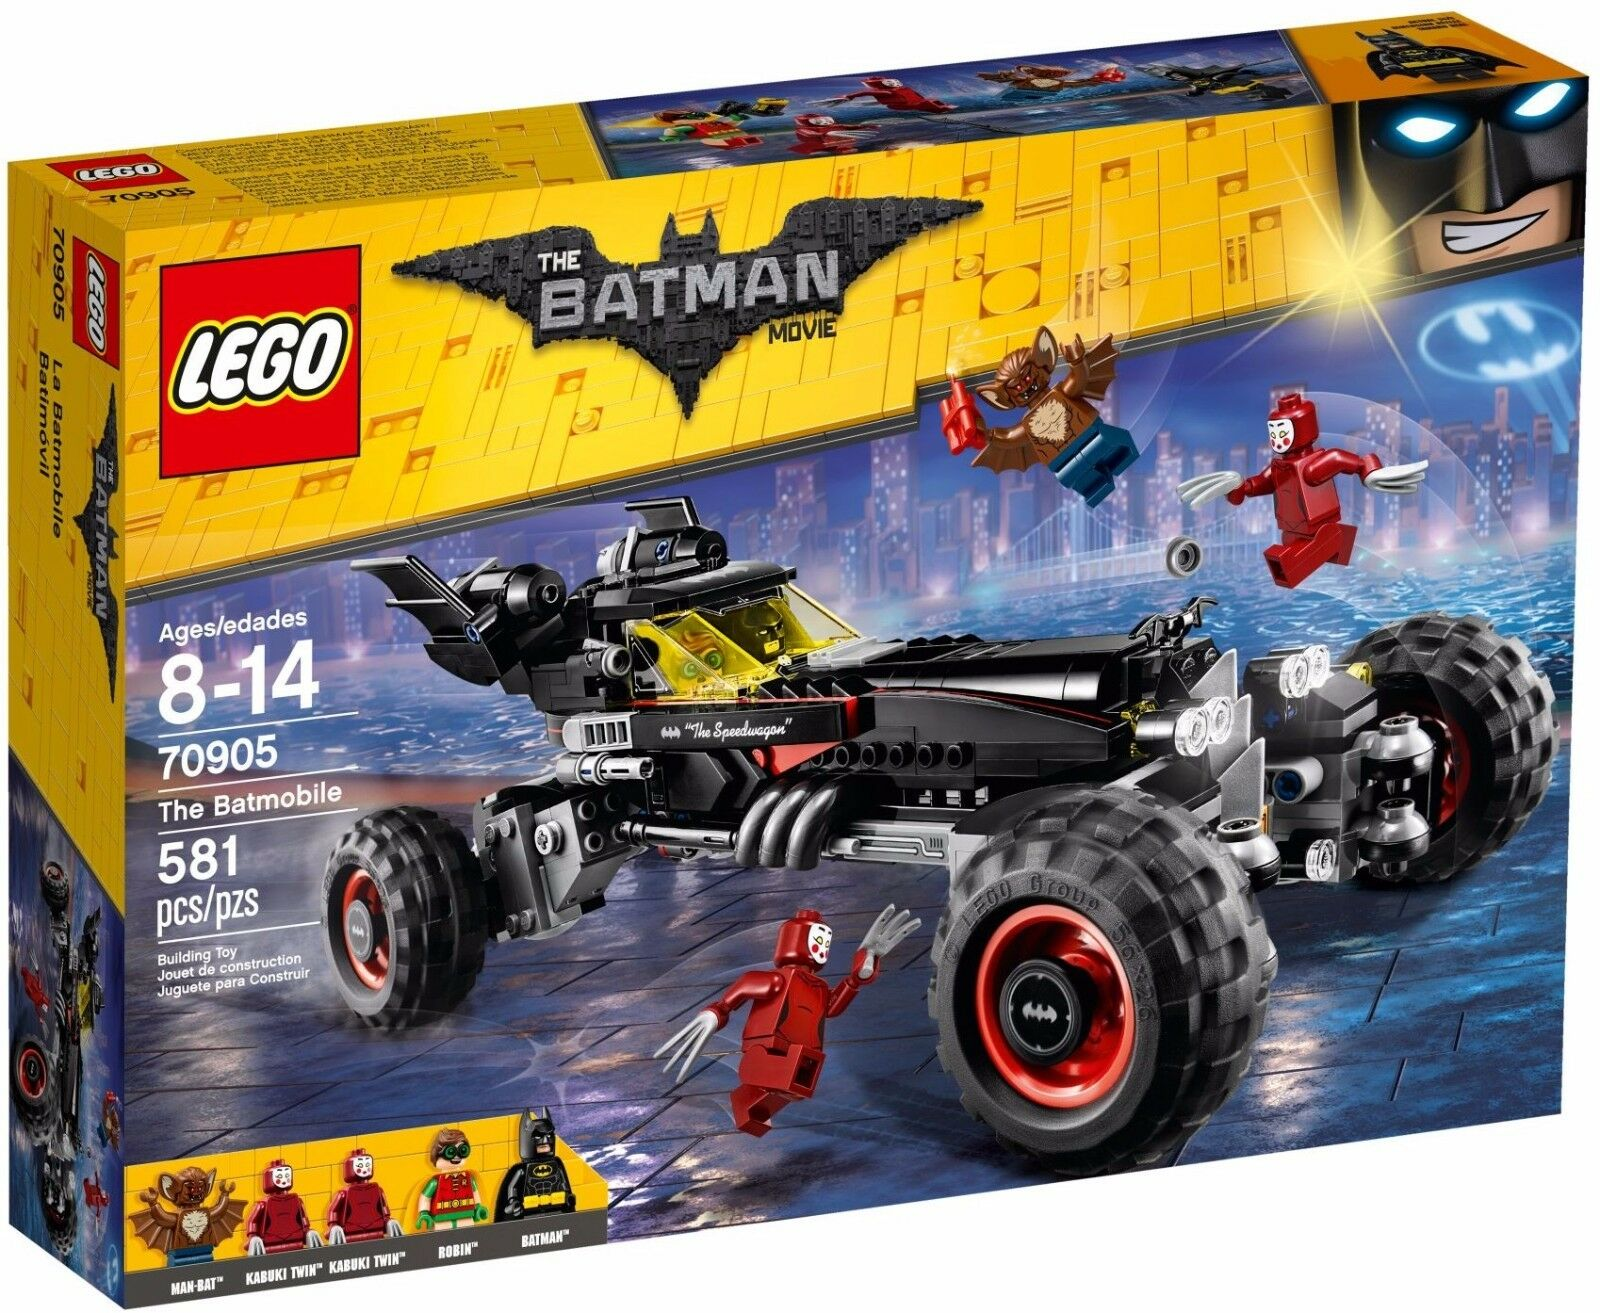 The Lego Batman Movie  The Batmobile  70905 - Building Set by LEGO